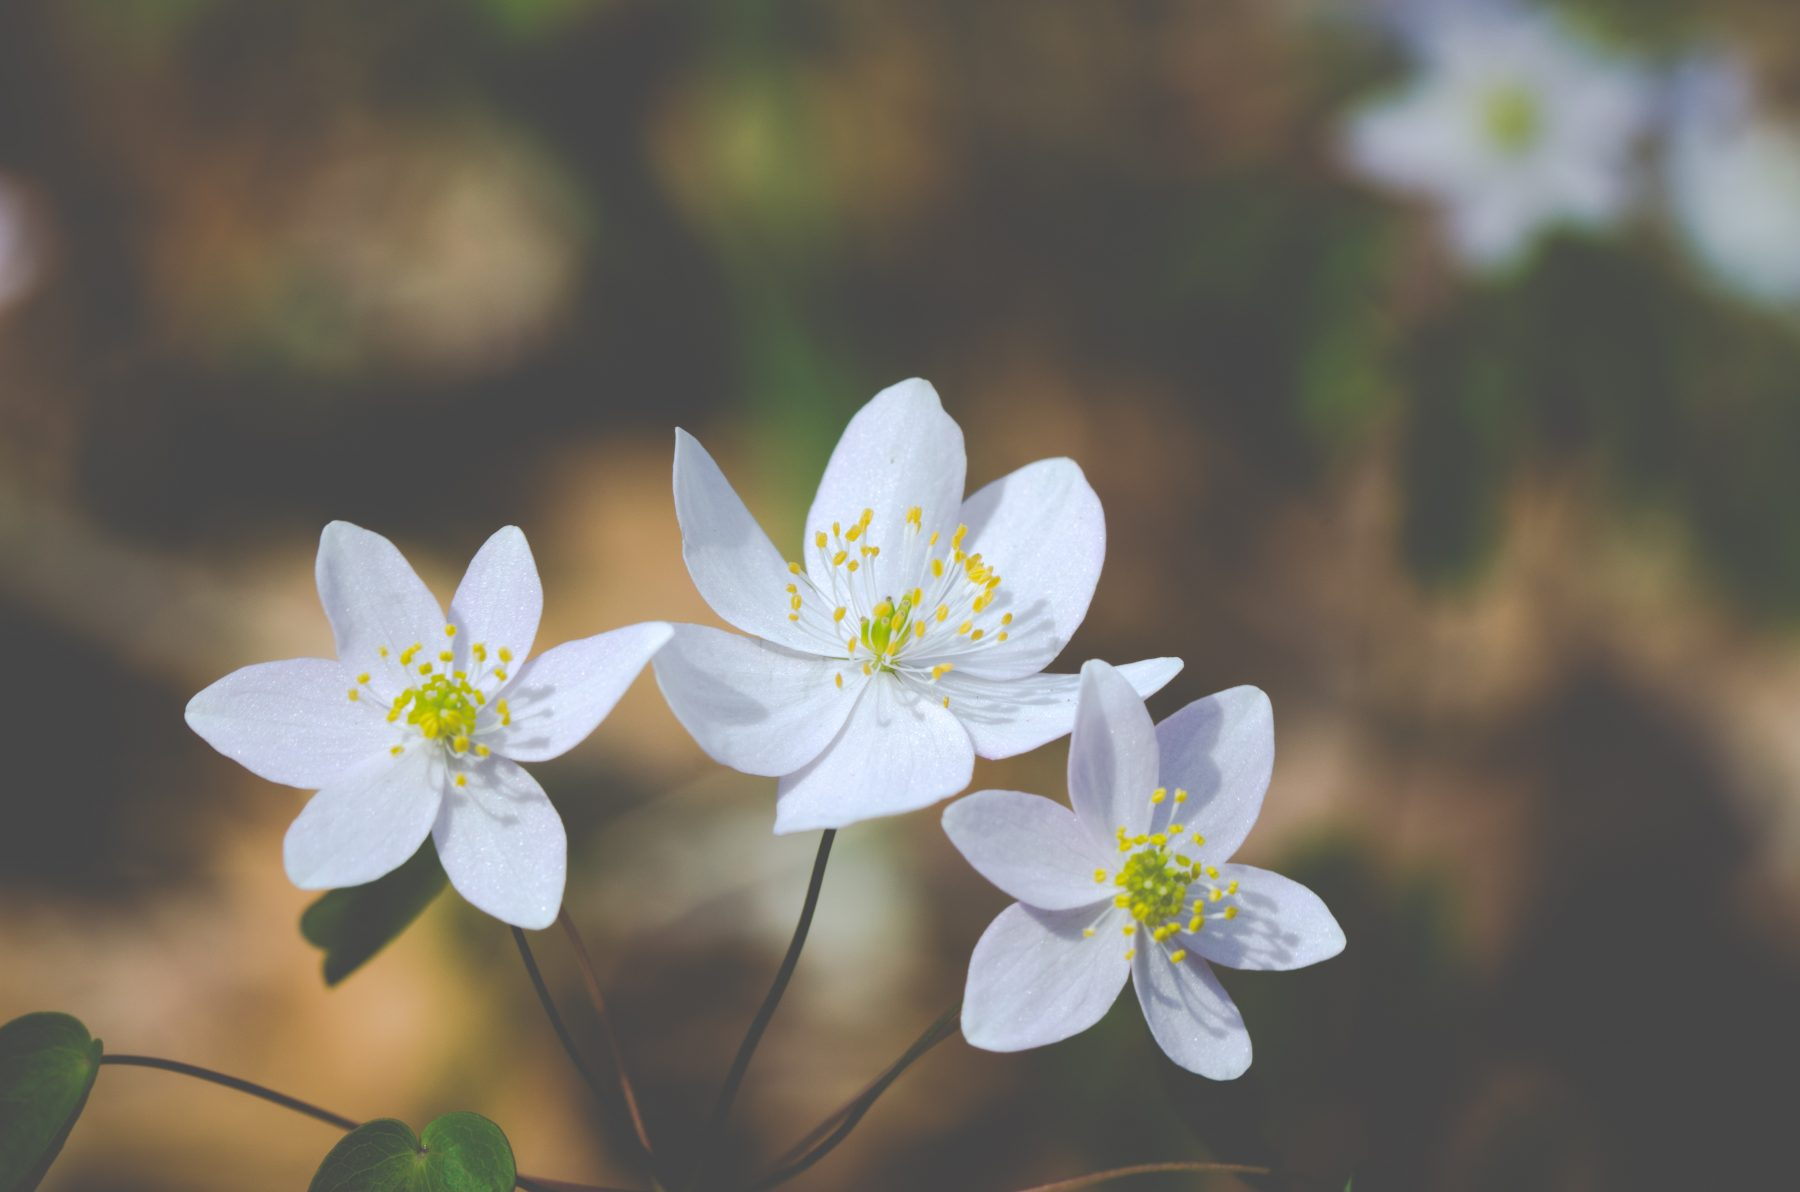 A small but tough herb, often on small well-drained mounds or slopes without deep leaf litter, alongside oak sedge. Blooms for an extended period in April to May.